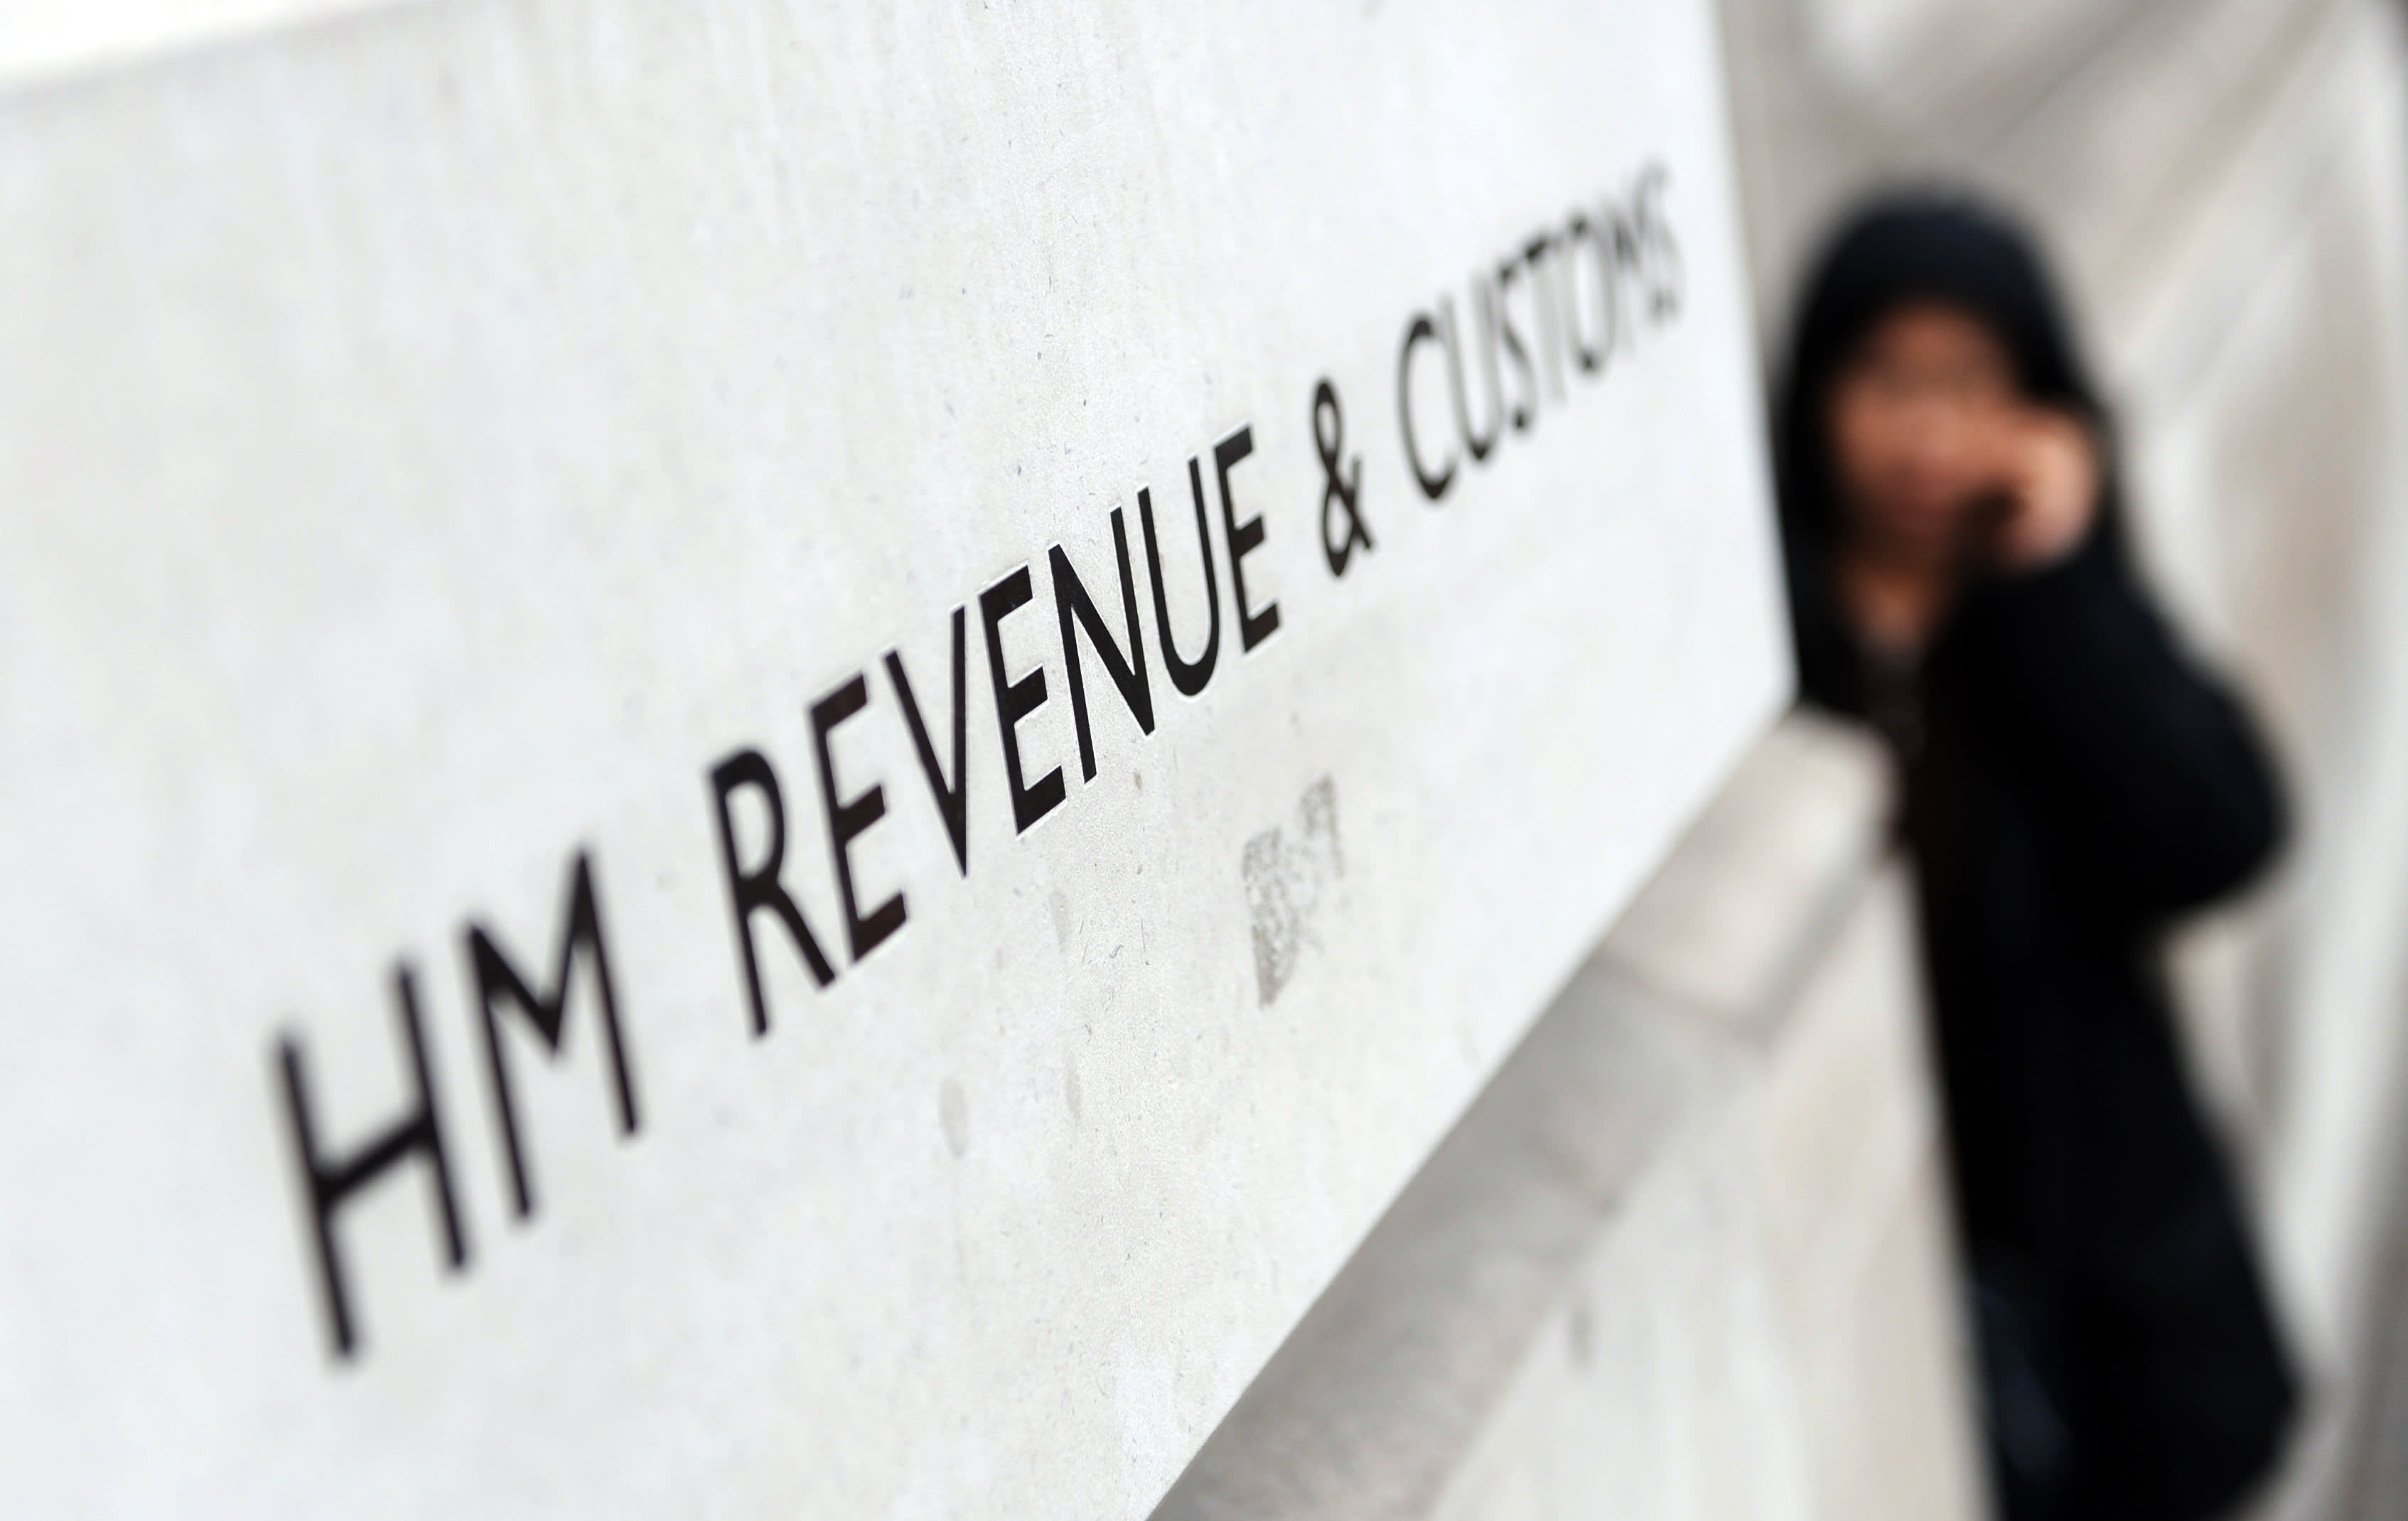 HMRC pledges leniency for furlough 'mistakes'